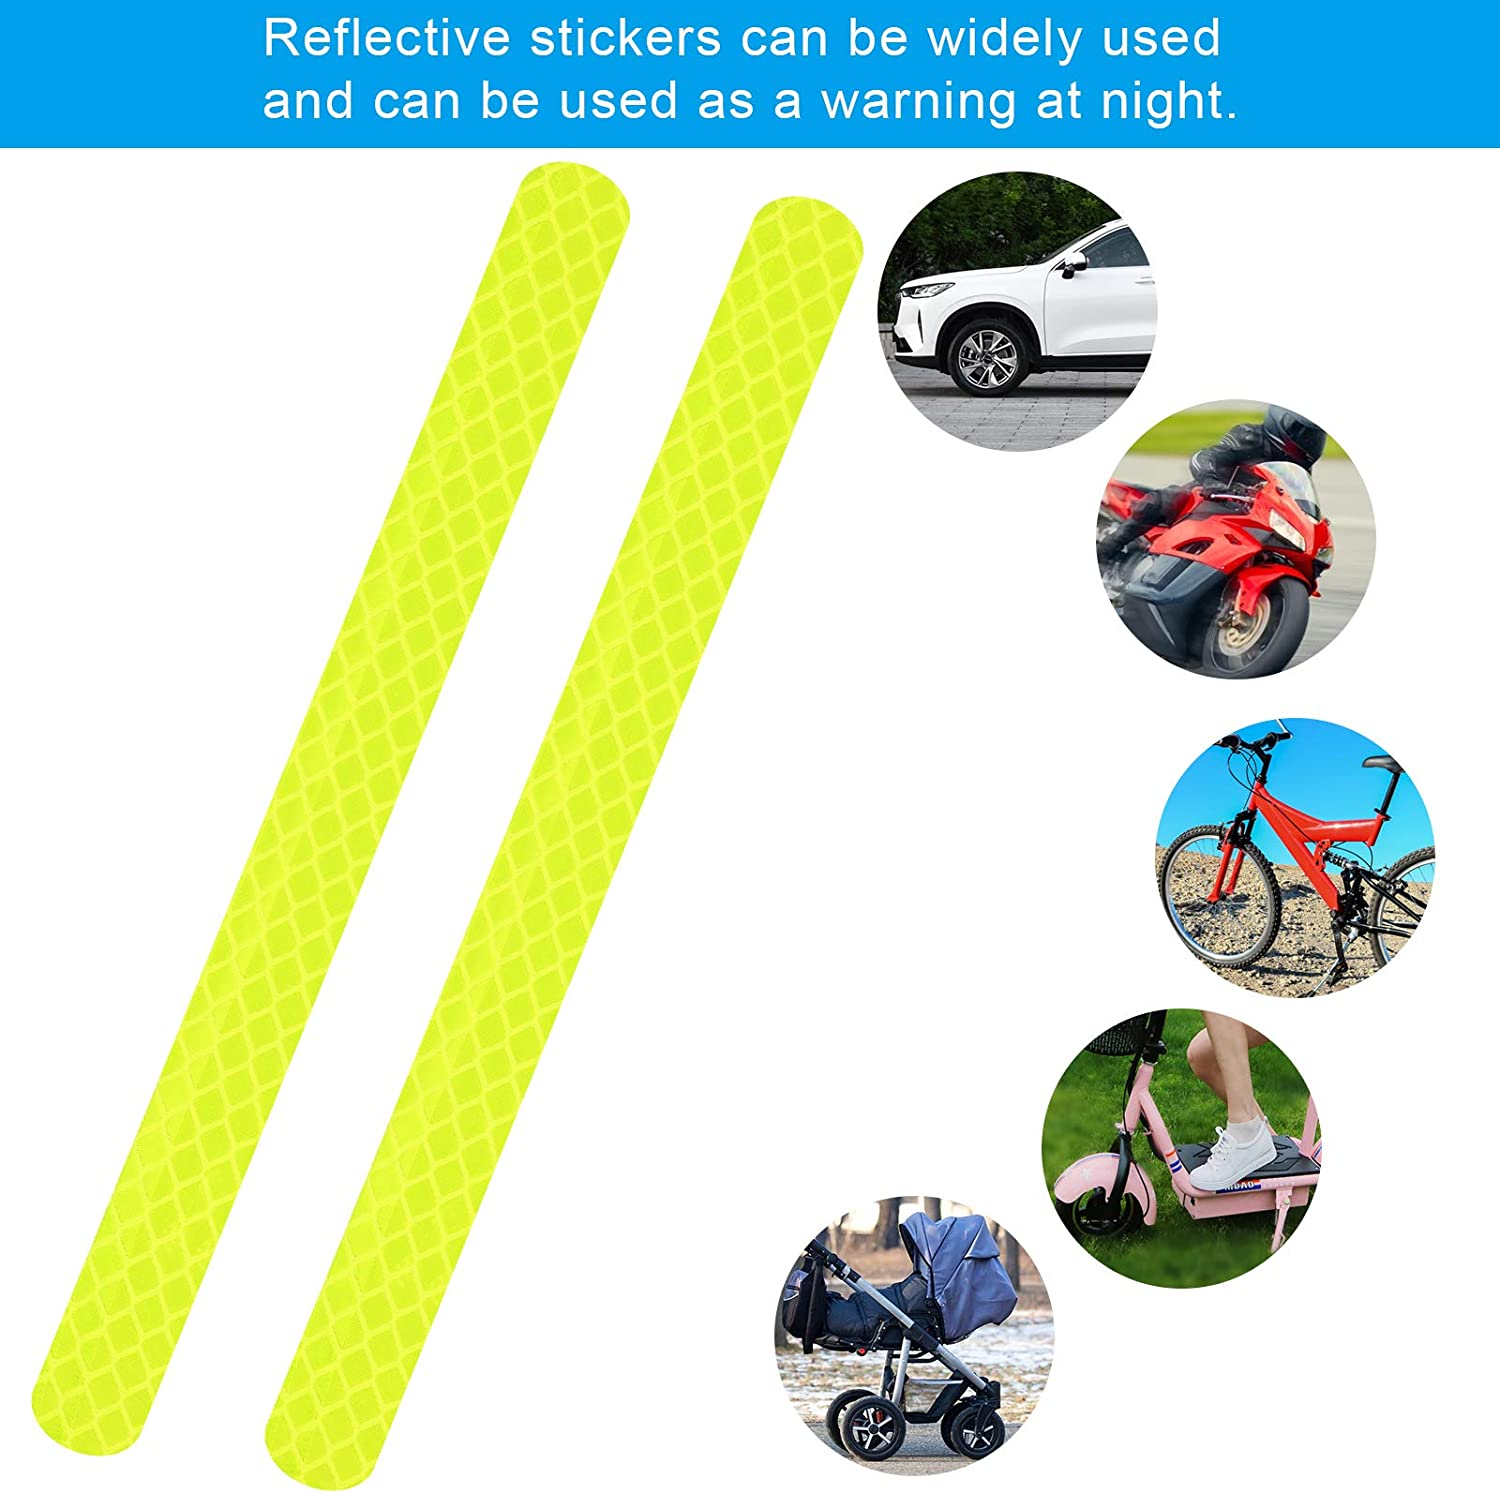 Red WEAVERBIRD 2pcs Rearview Mirror Sticker Automotive Reflective Stickers Mirror Protection Car Rear View Mirror Stickers Night Light Warning Strip